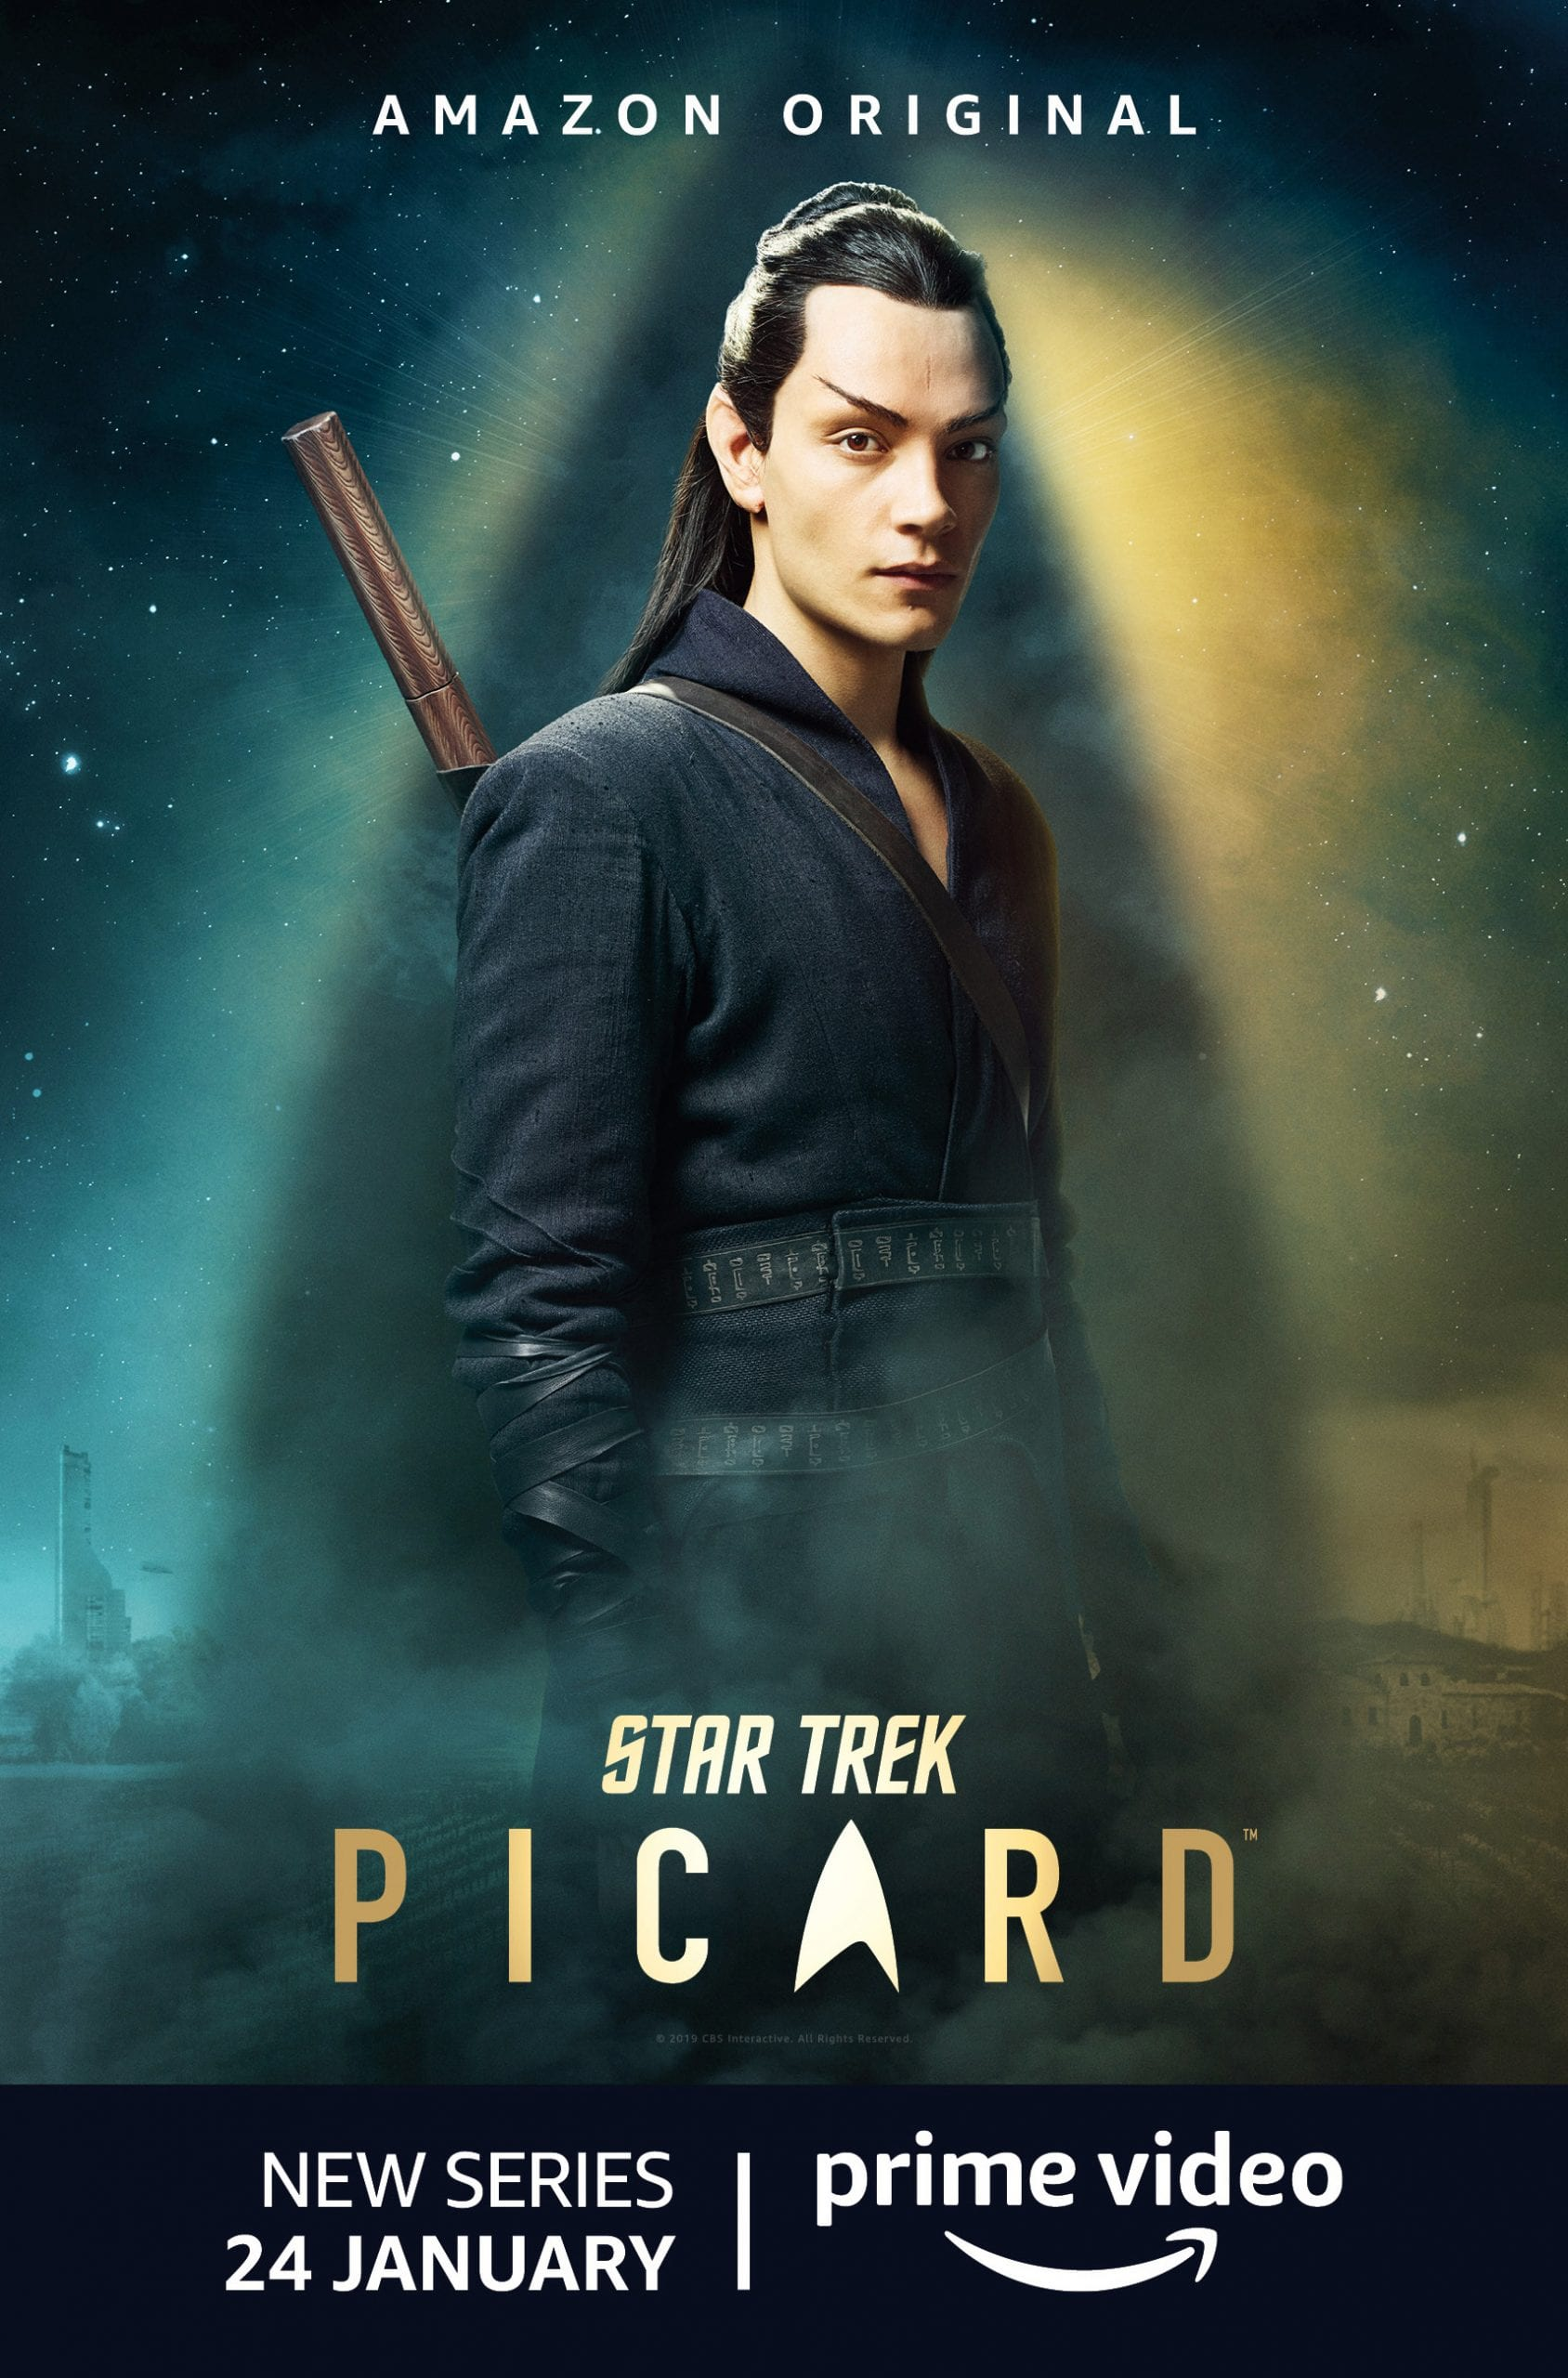 Star Trek Picard Character Posters Evan Evagora as Elnor